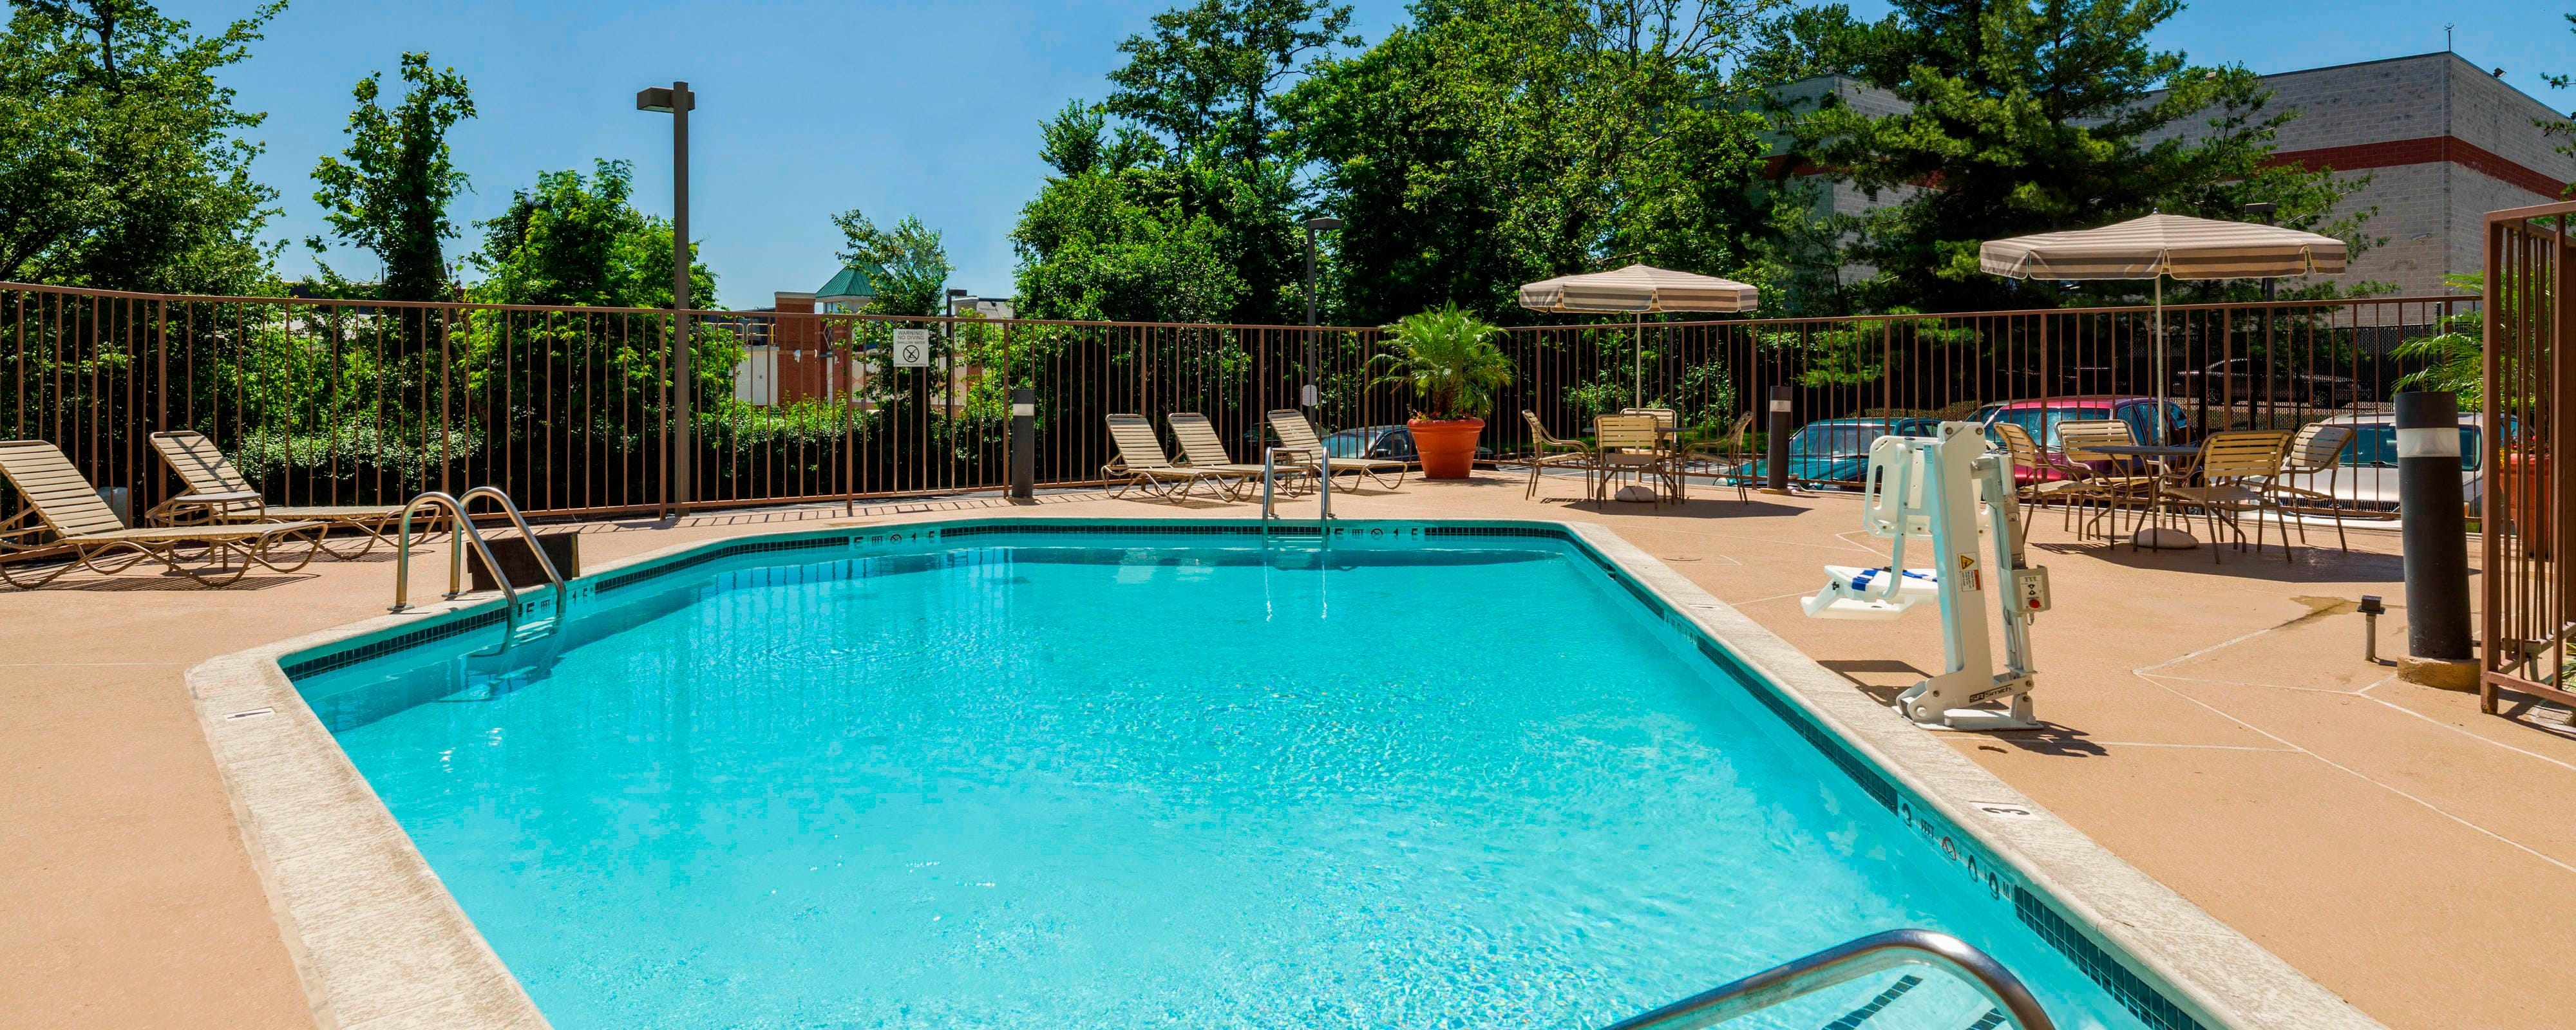 Hotel mit Pool in Laurel, Maryland